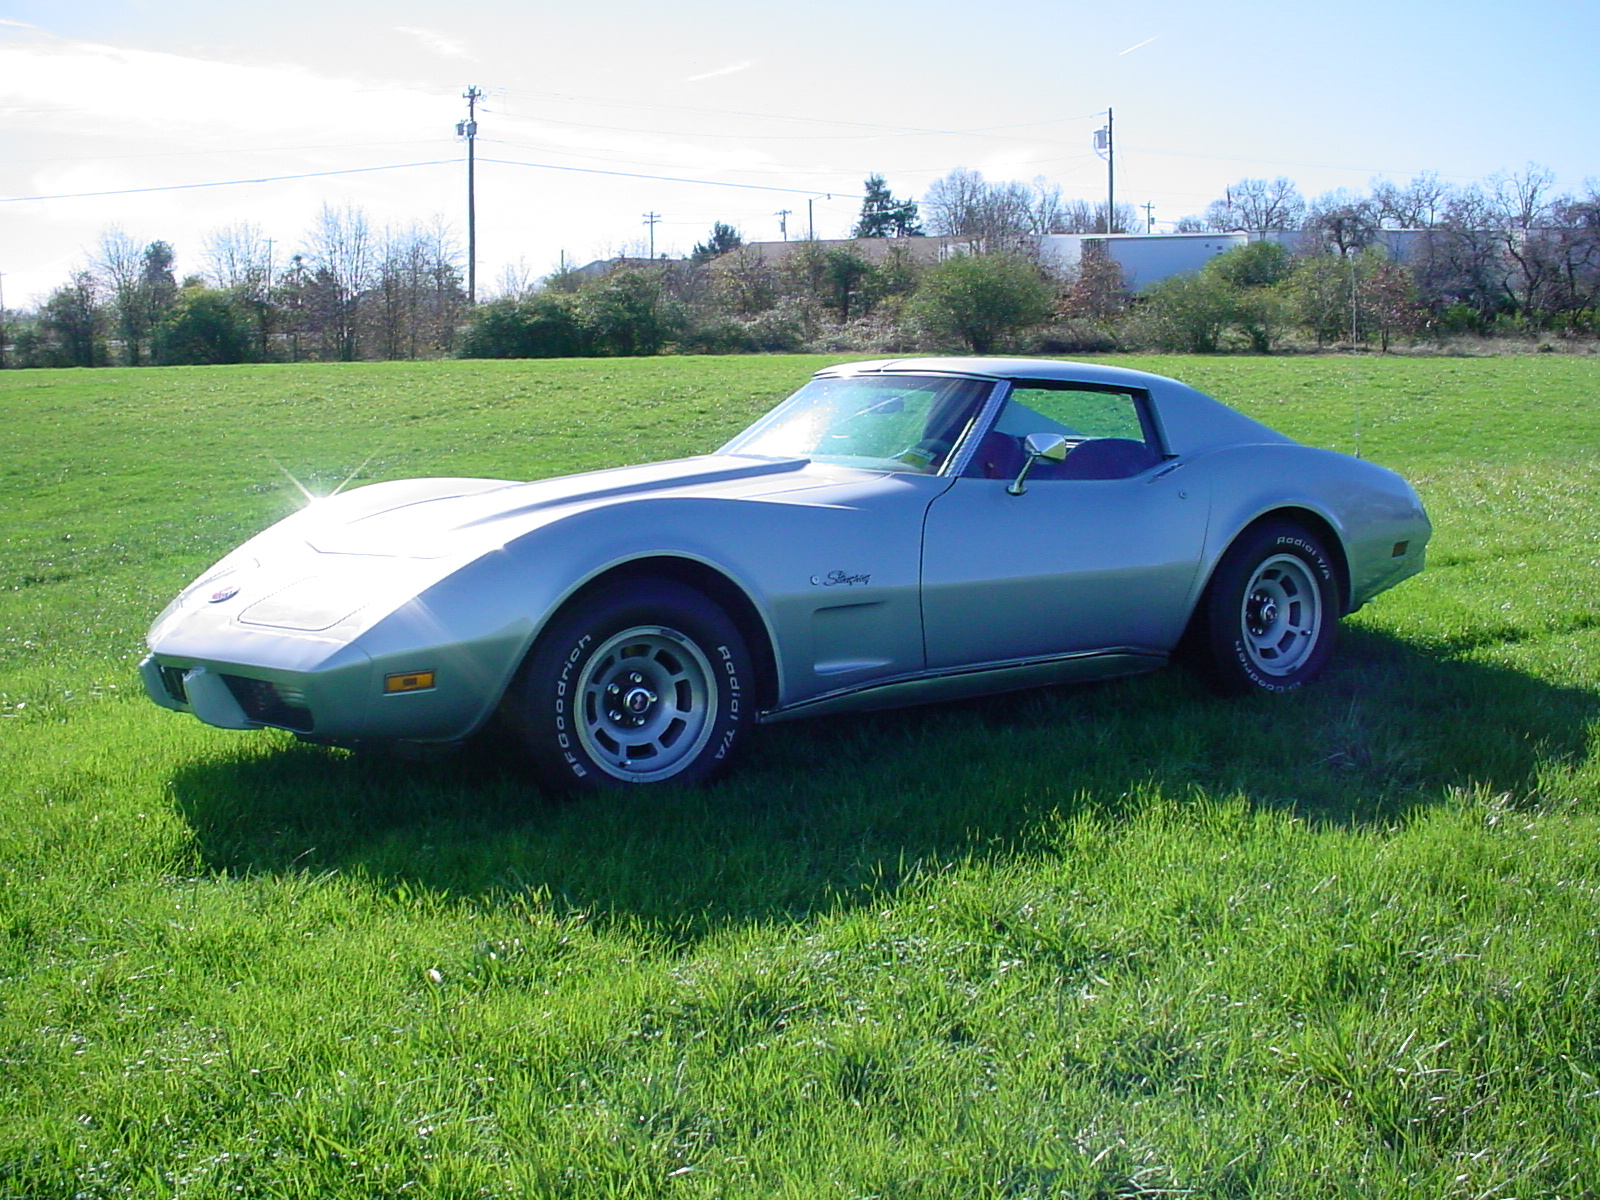 1976 Chevrolet Corvette Pictures C433 pi9401274 further 1968 Pontiac GTO Pictures C8409 pi35946506 also 1992 Chevrolet Corvette Pictures C422 in addition Parts 79052401 furthermore 1955 Ford Thunderbird Pictures C4609. on 1974 corvette interior